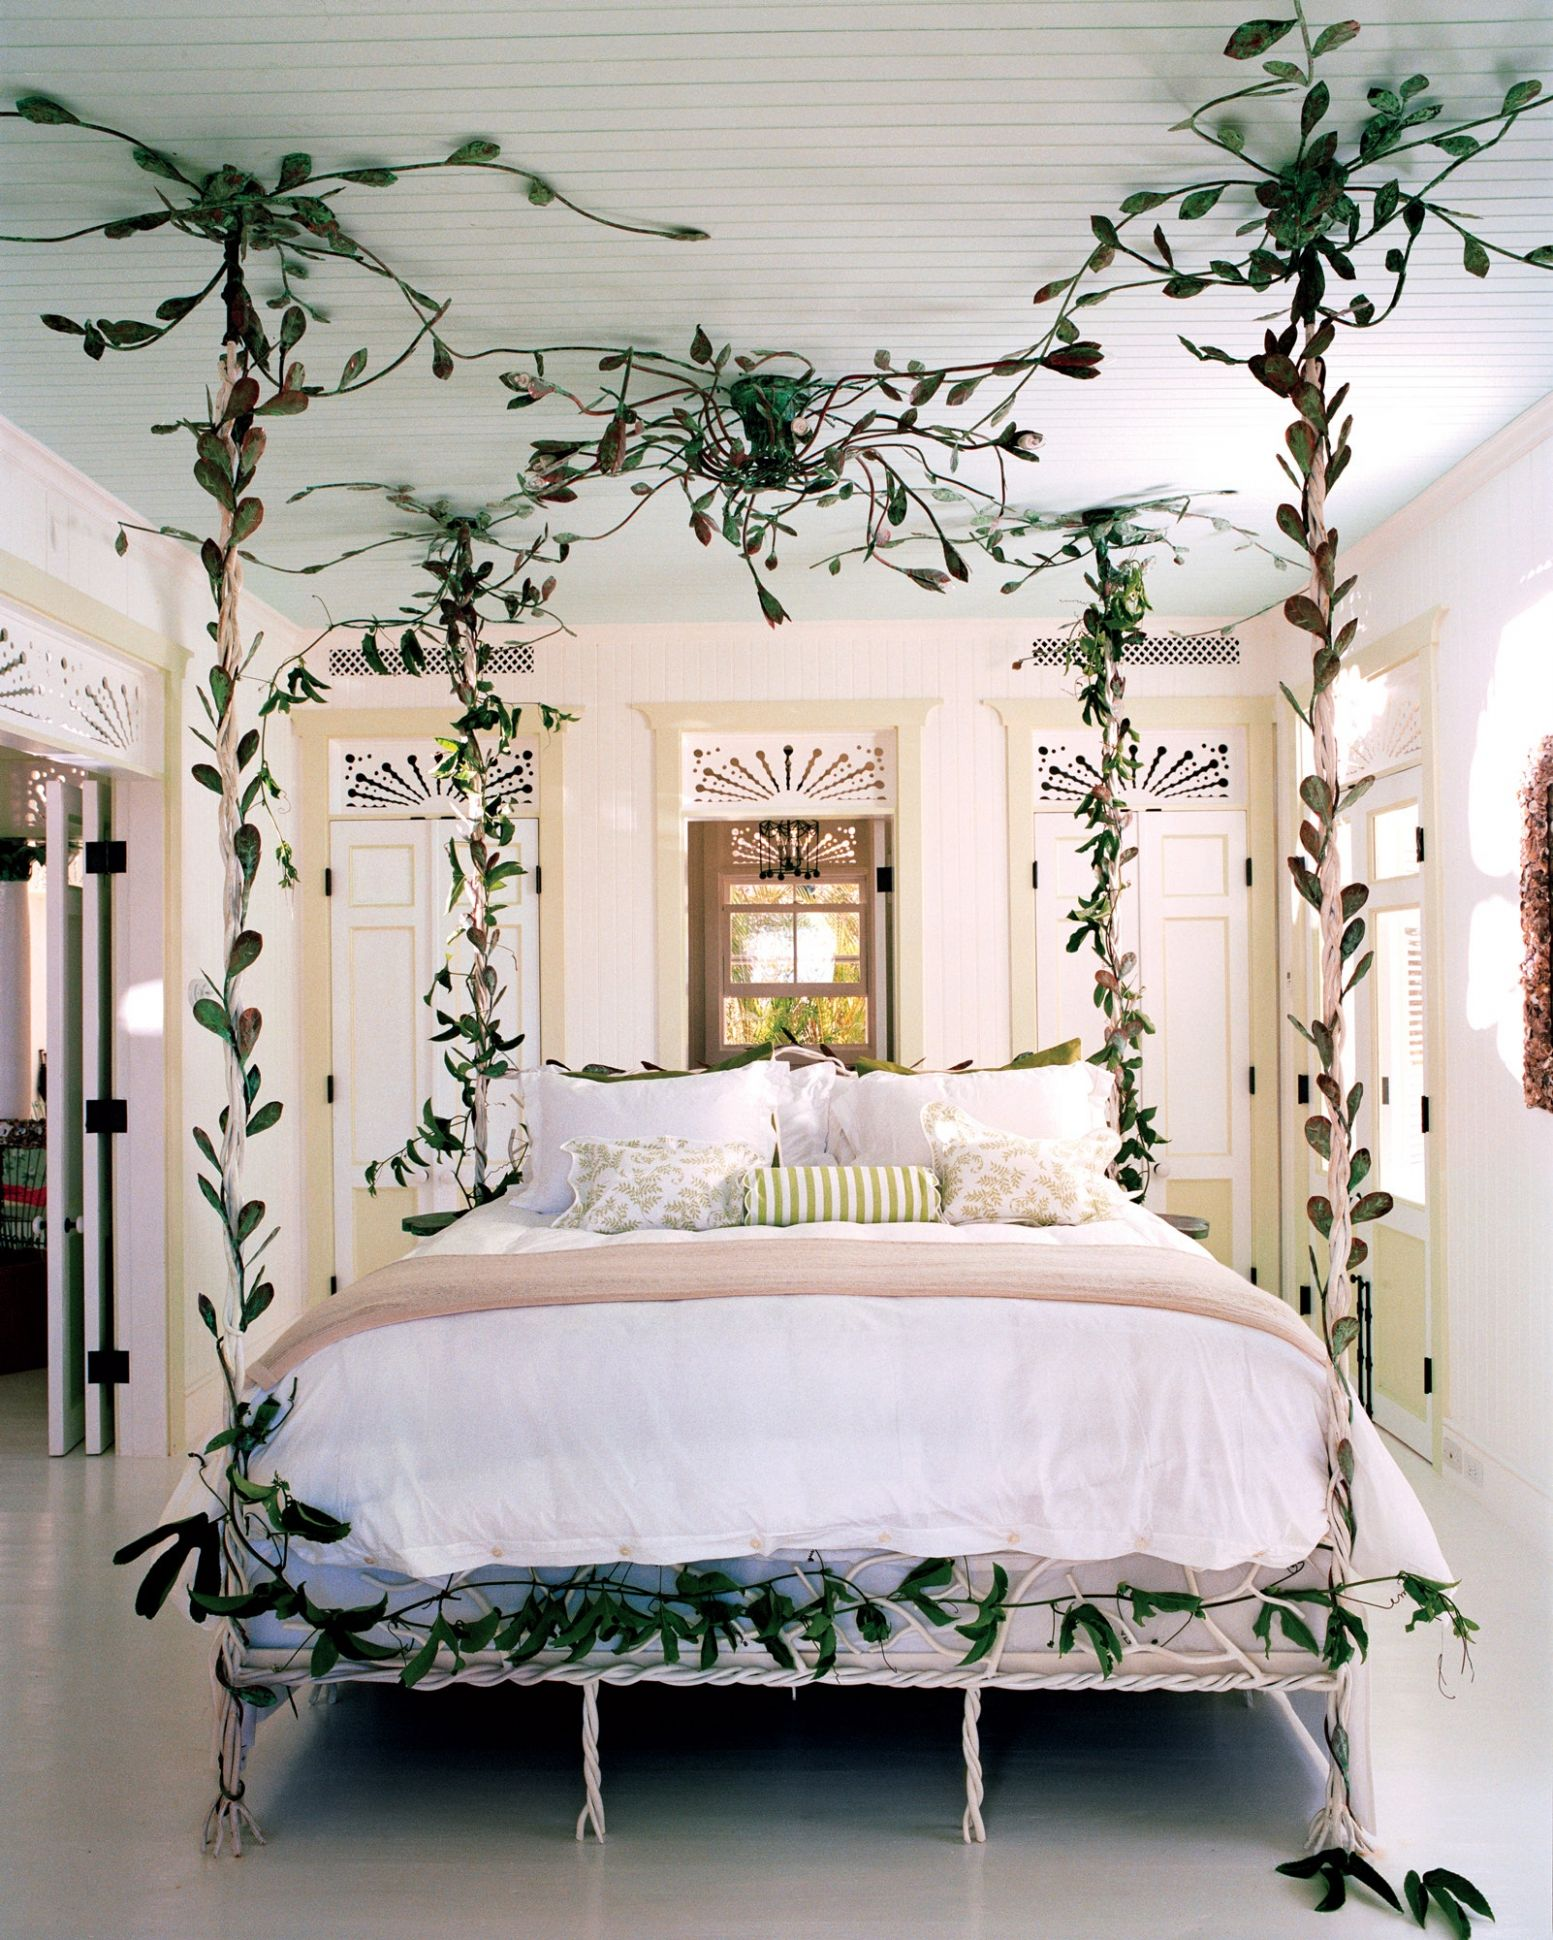 The Most Beautiful Bedrooms in Vogue | Vogue - bedroom ideas vogue